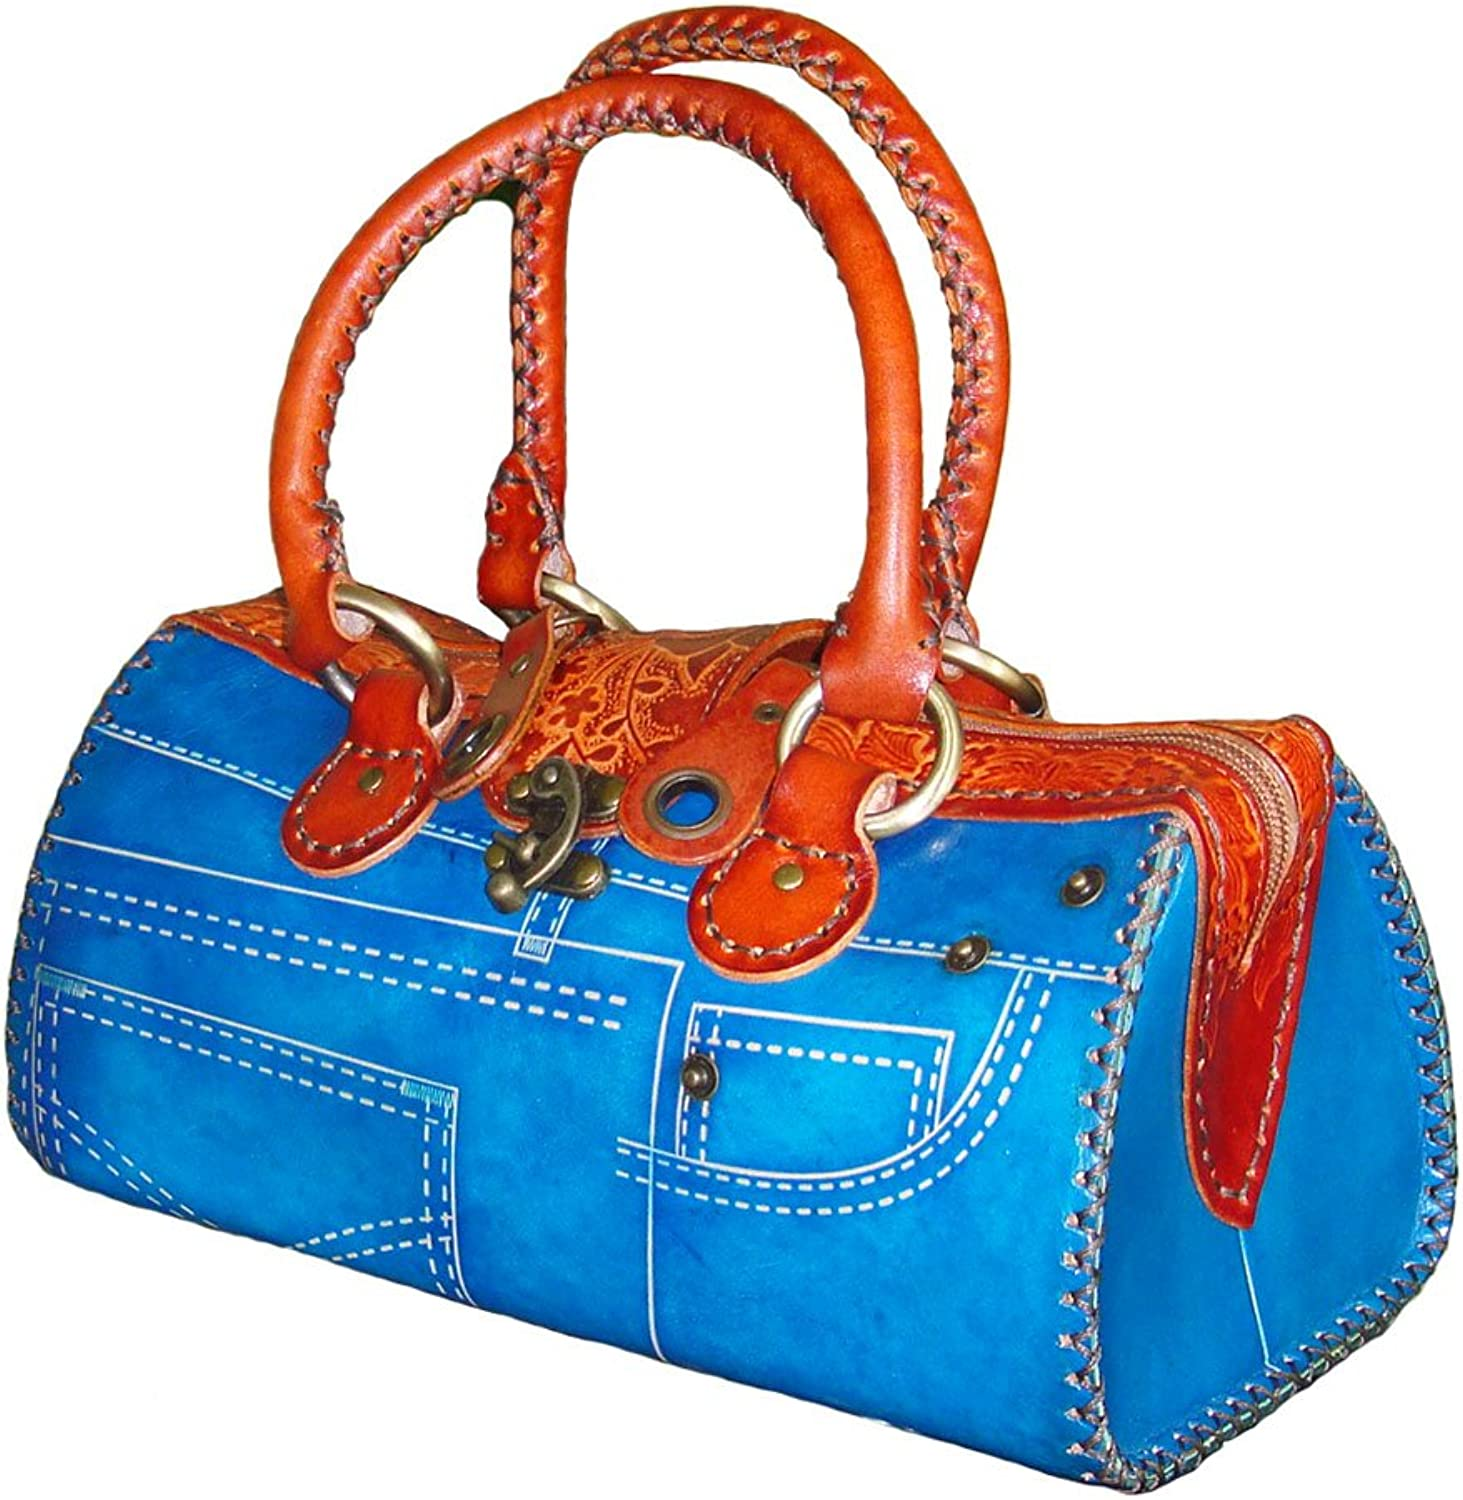 Genuine Leather Handbag with Jeans Designs,attractive bluee.truly Handmade,unique   (Medium)